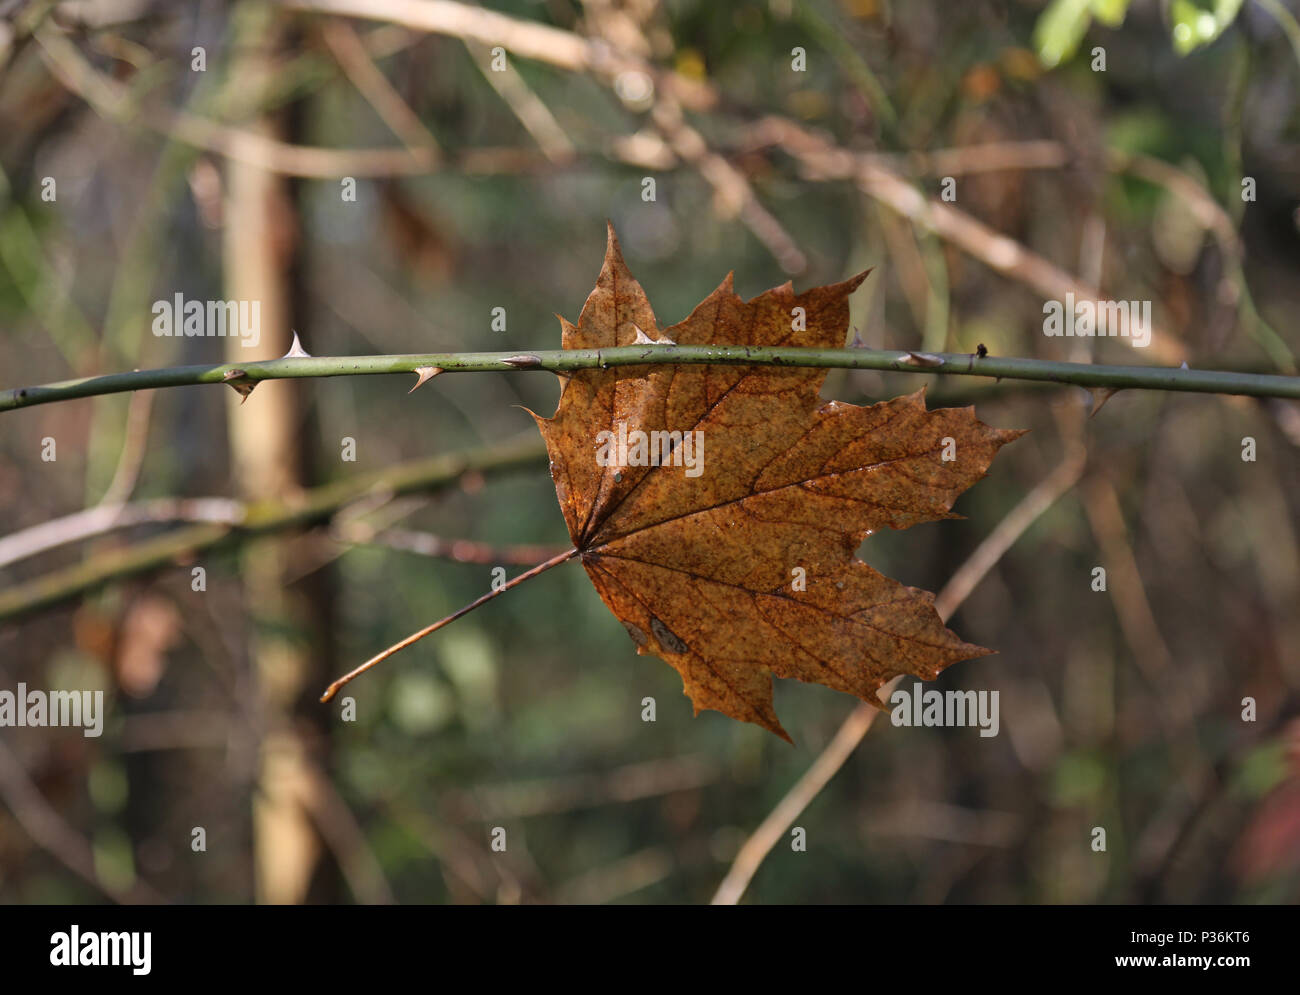 Berlin, Germany, withered maple leaf hangs on the spine of a rose branch - Stock Image